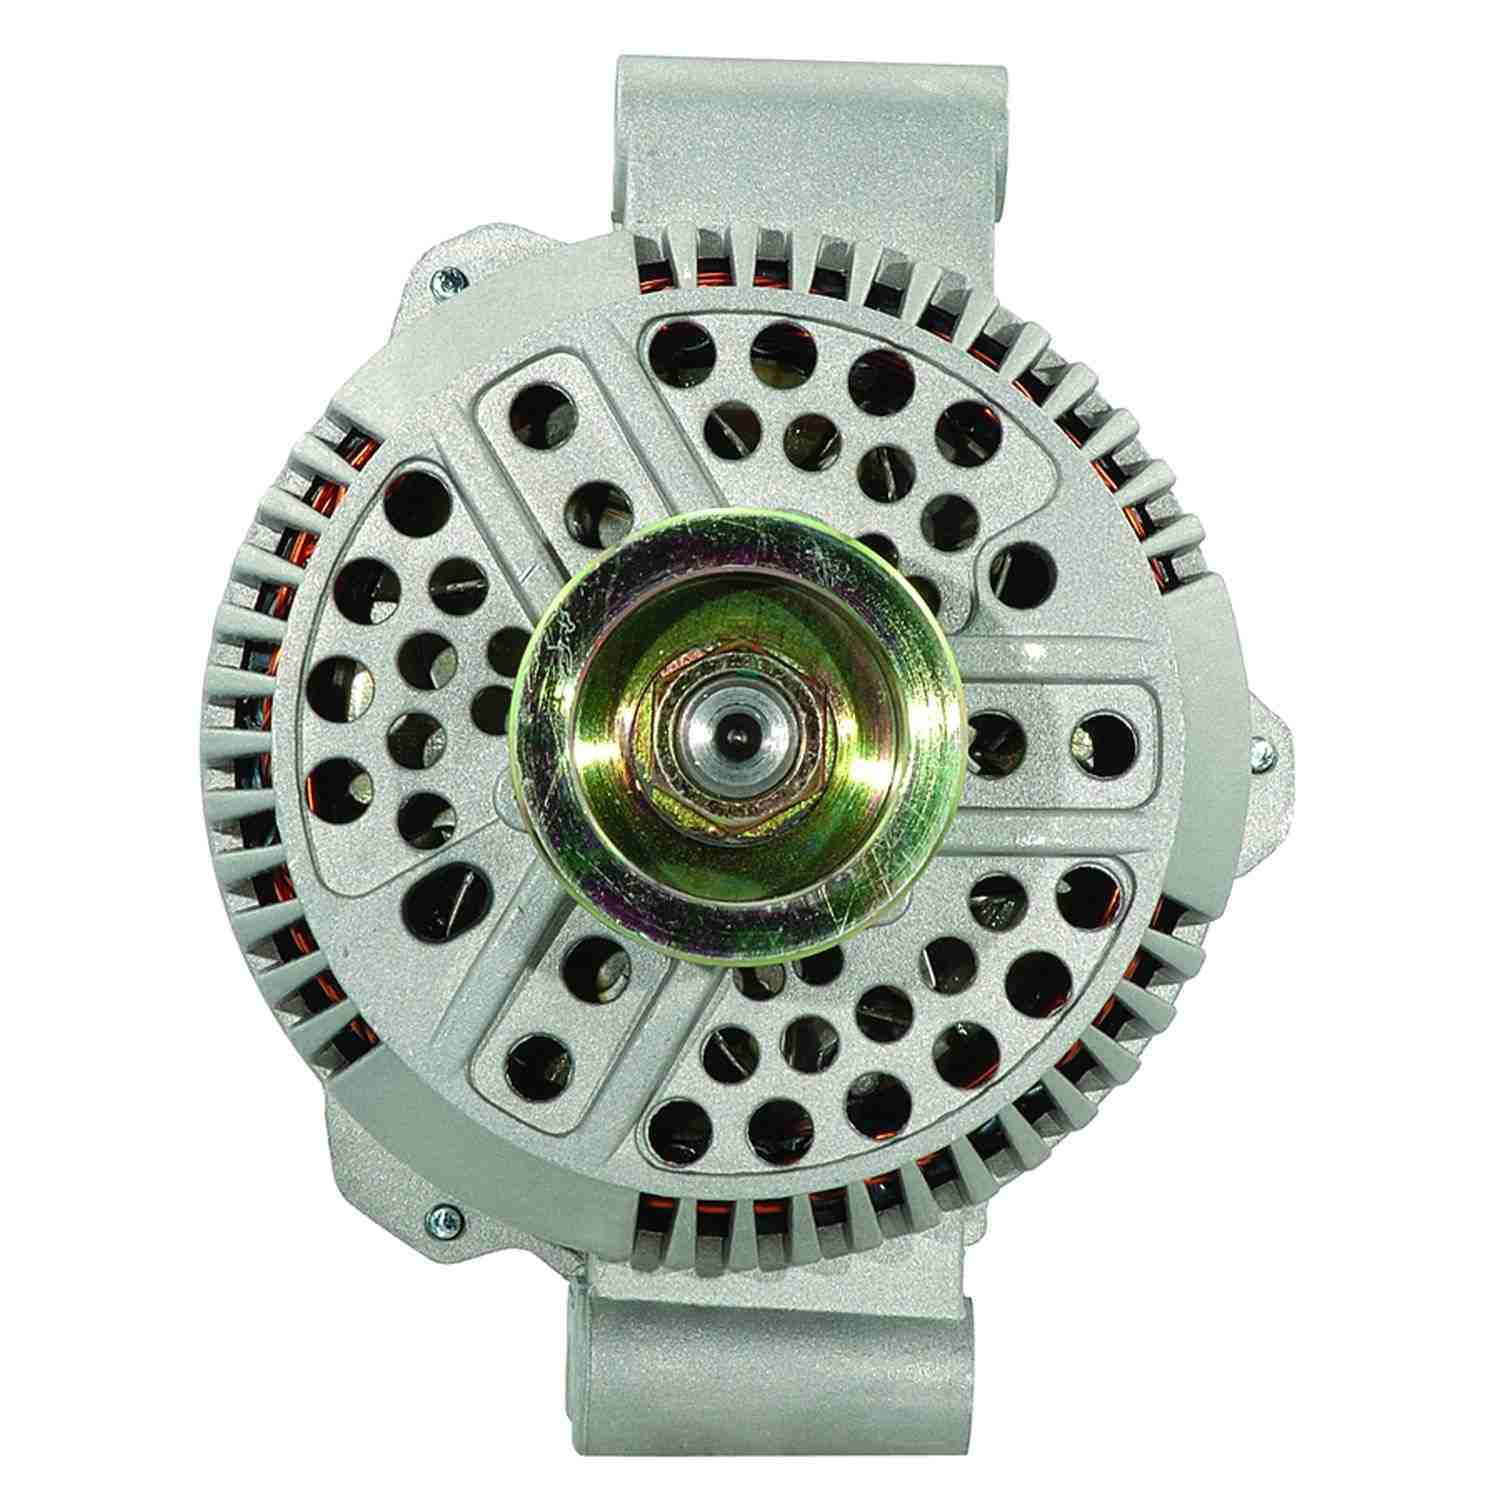 ACDELCO GOLD/PROFESSIONAL - Alternator - DCC 335-1106